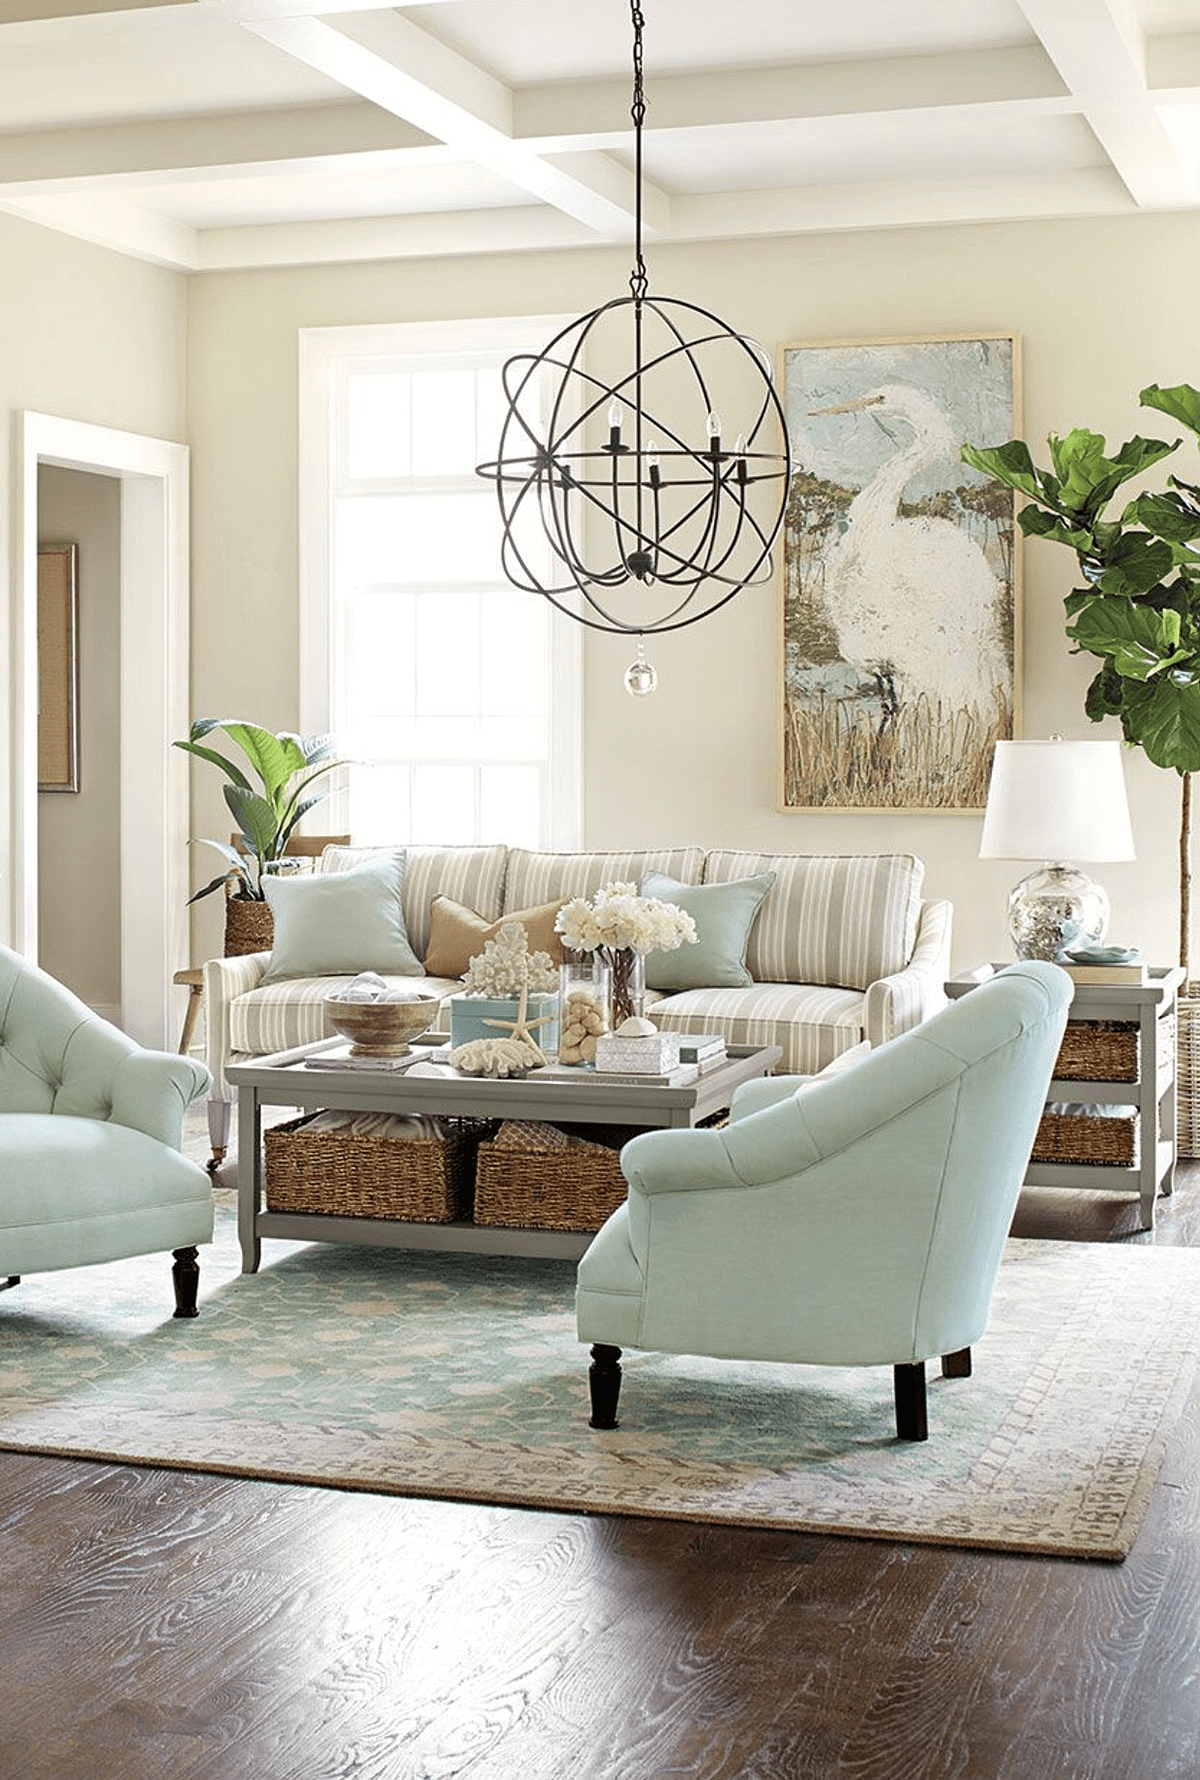 Sand Seashells and Soft Beach-Themed Undertones : coastal themed decorating ideas - www.pureclipart.com